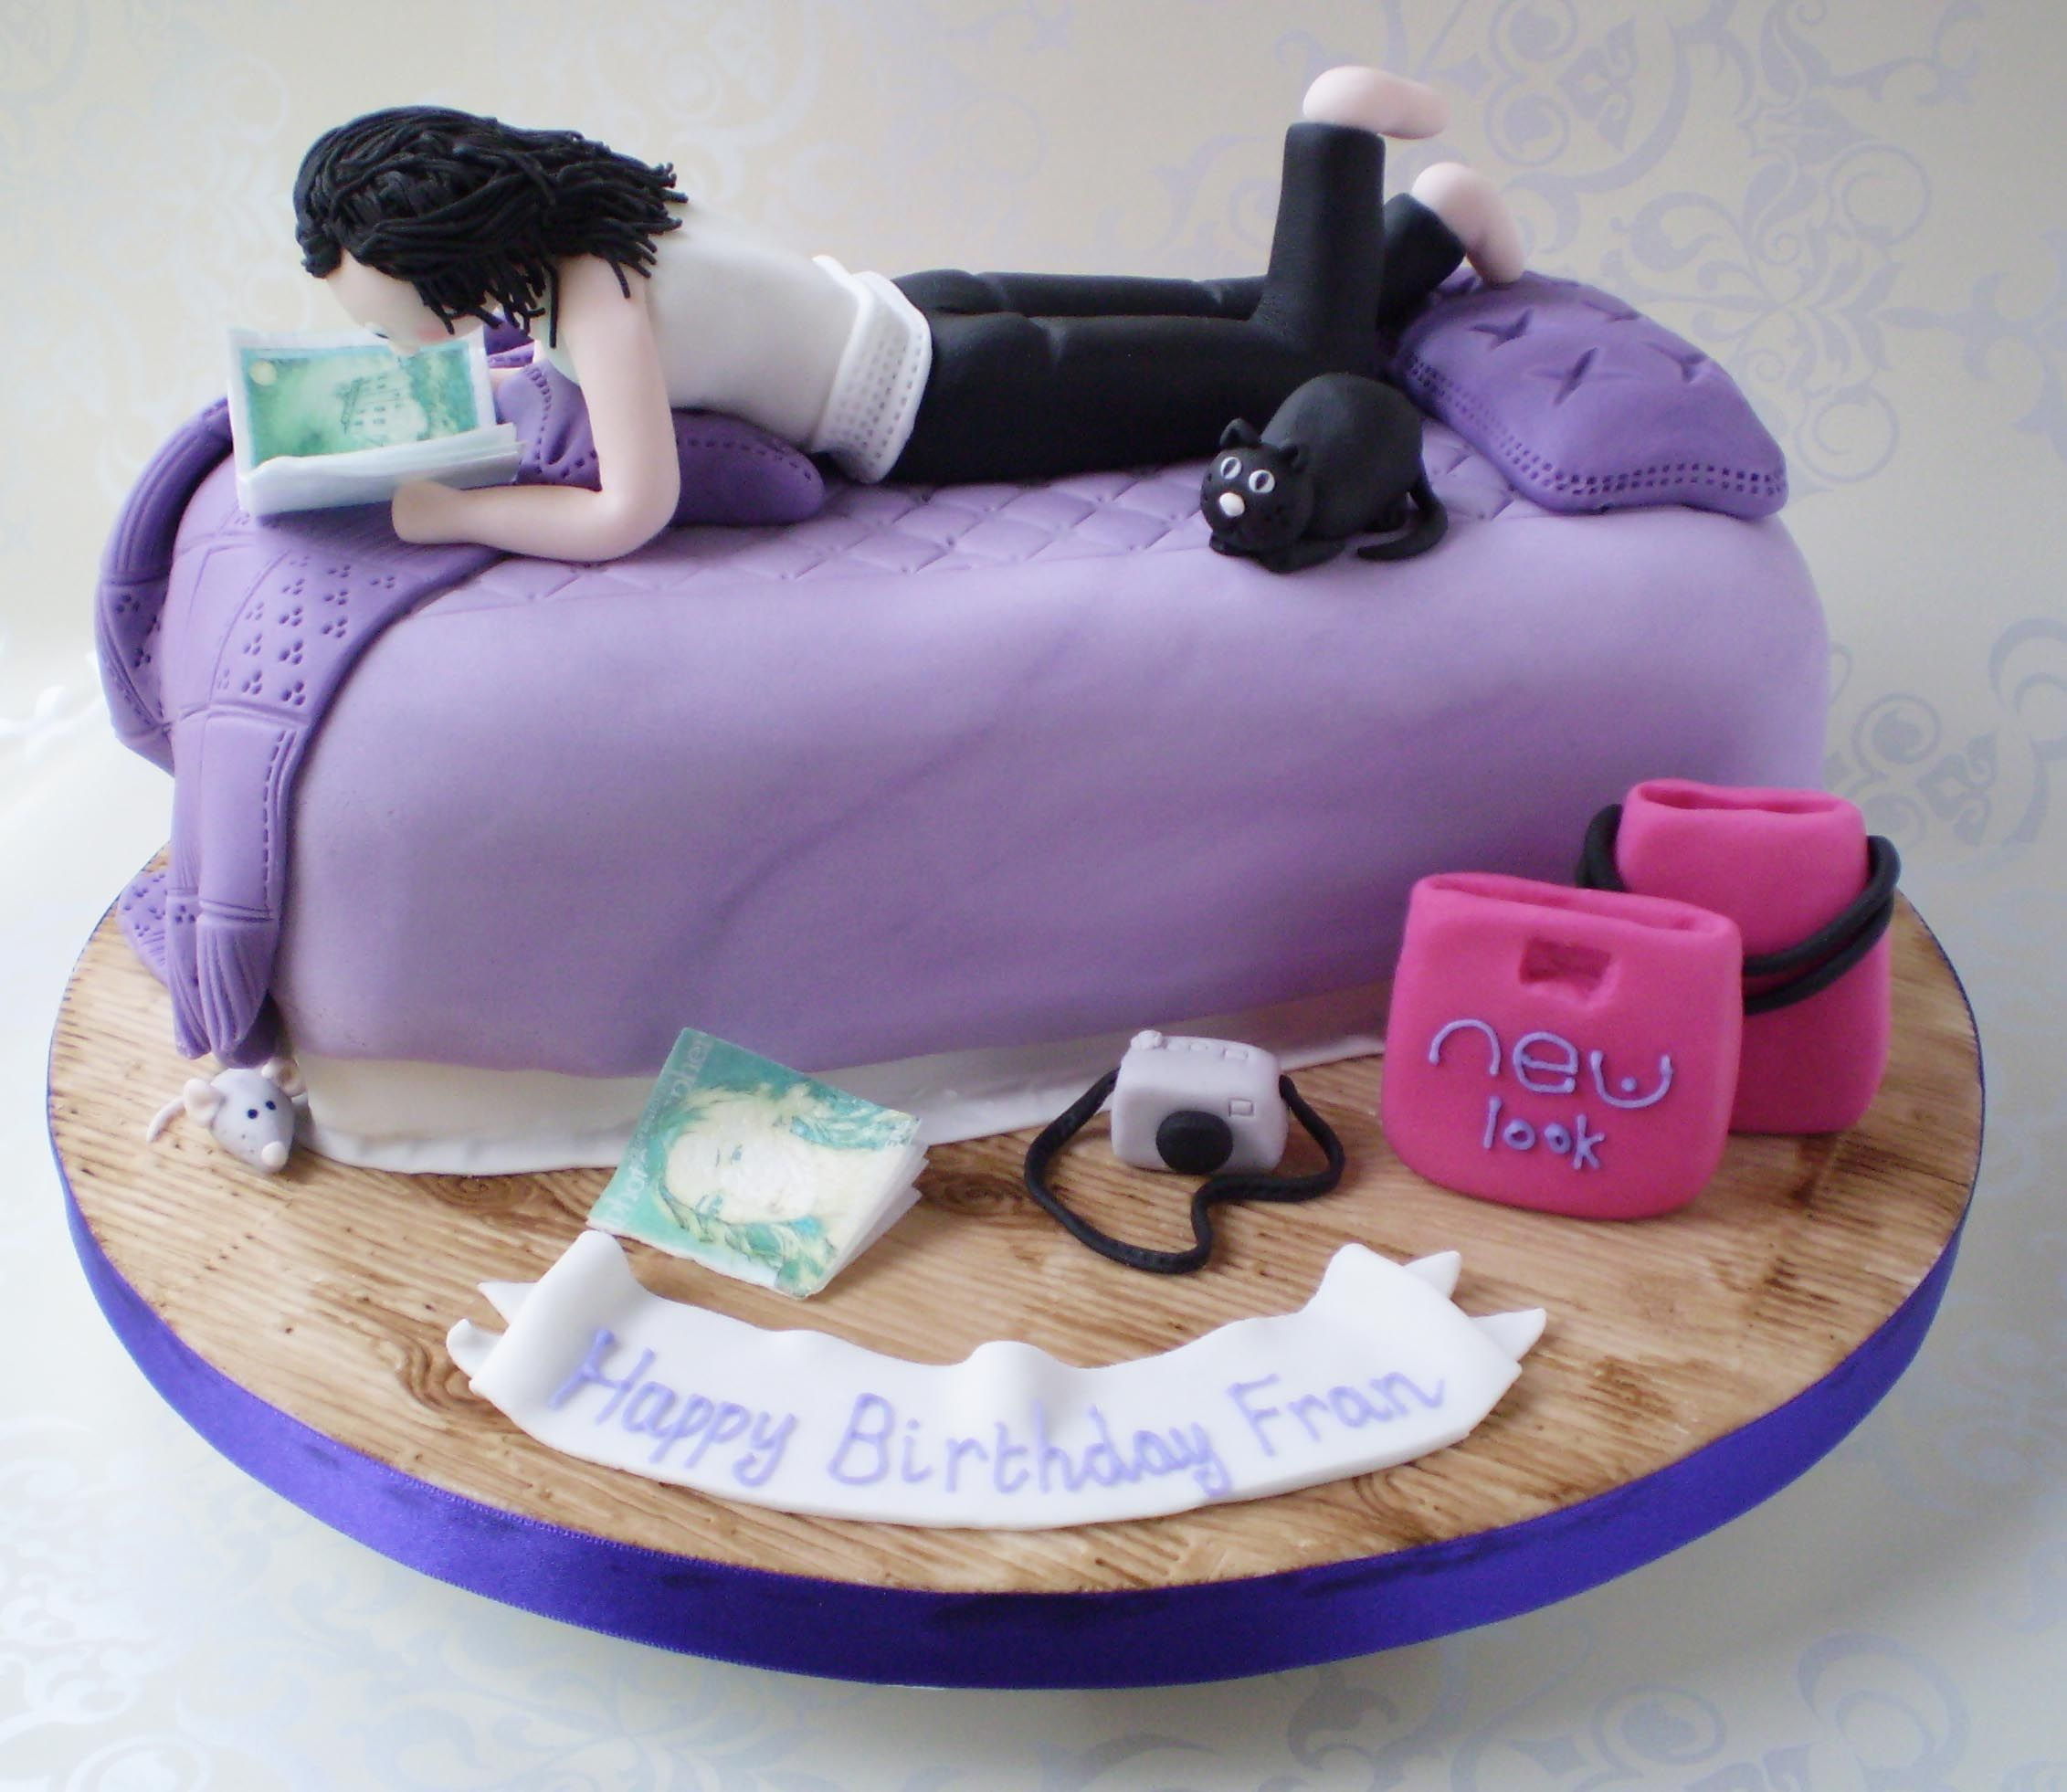 Teenagers Bedroom Birthday Cake cakepins.com Frejas ...